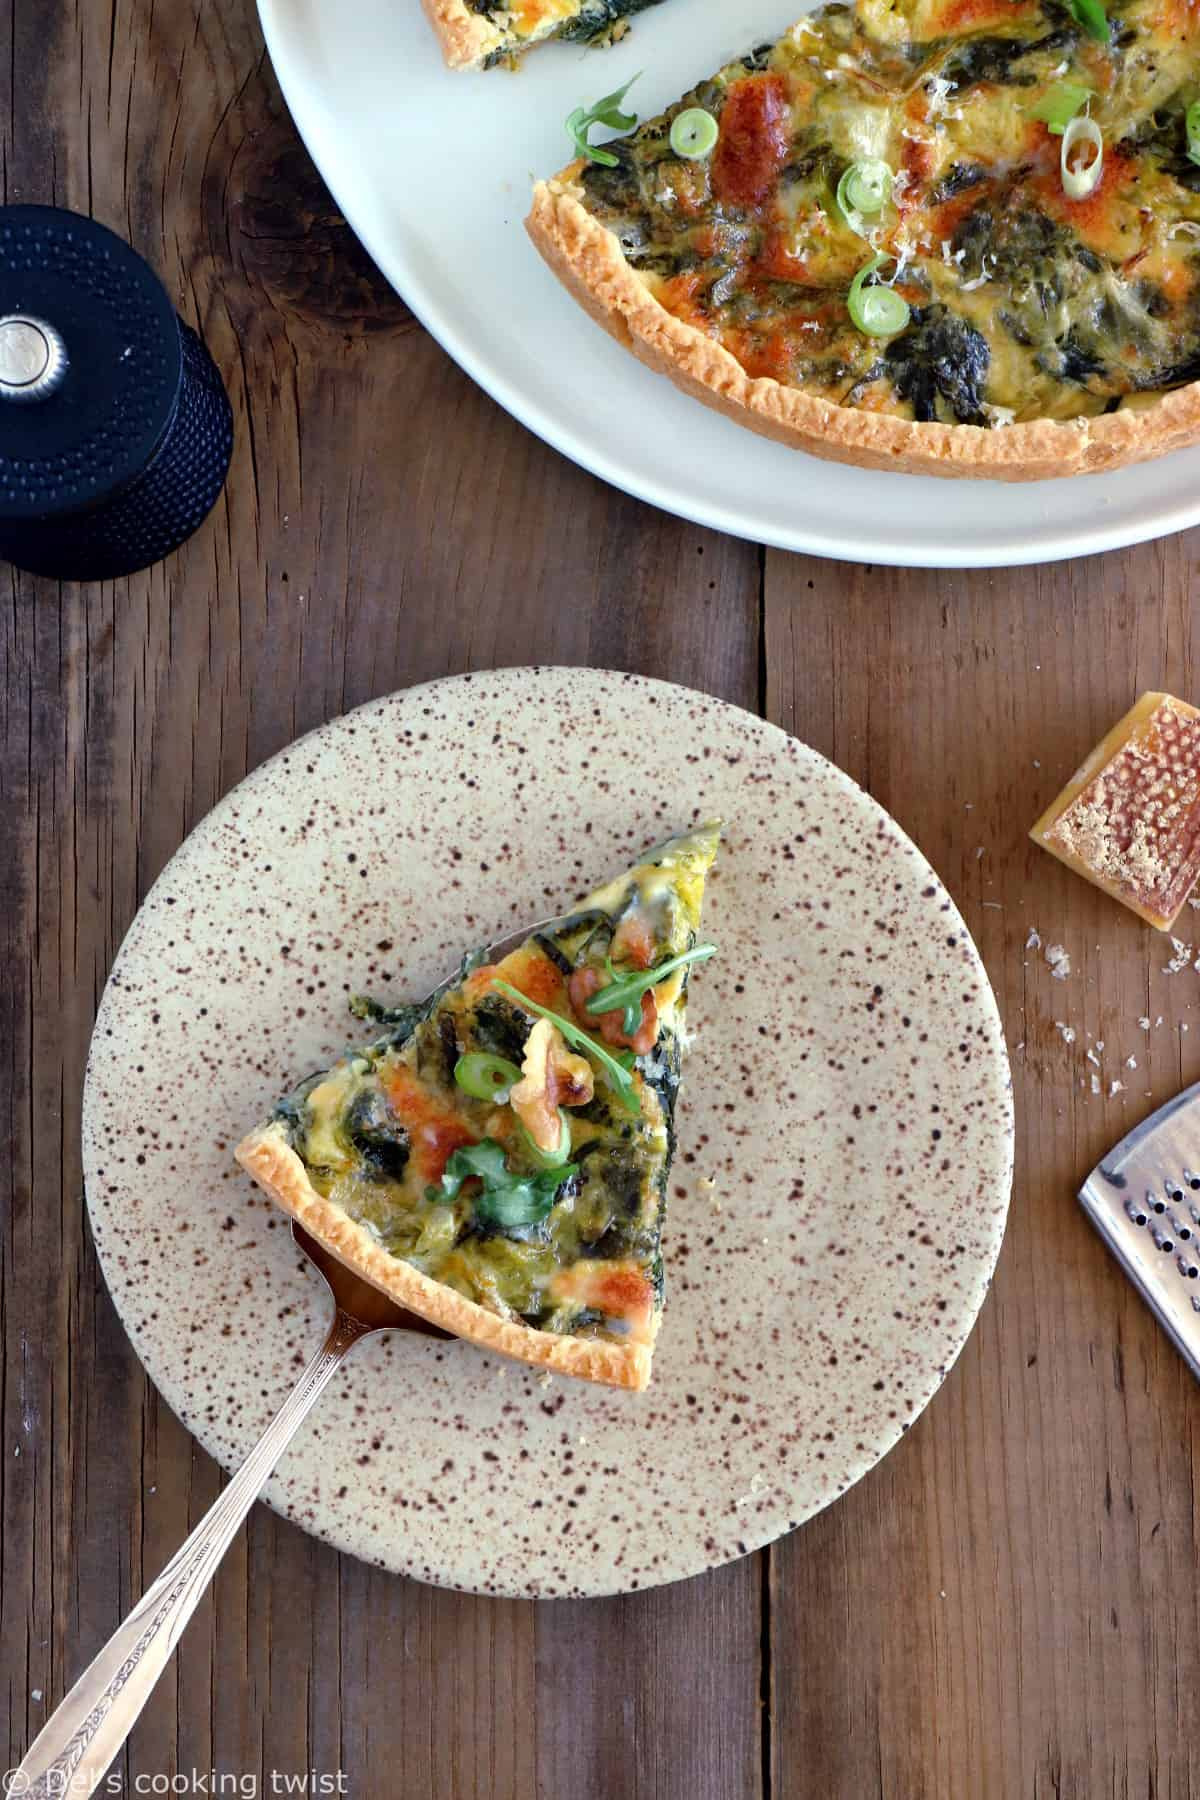 French leek quiche is a classic winter weeknight dinner in France. Plant-based and prepared with Comté cheese, this dish is full of comforting flavors.